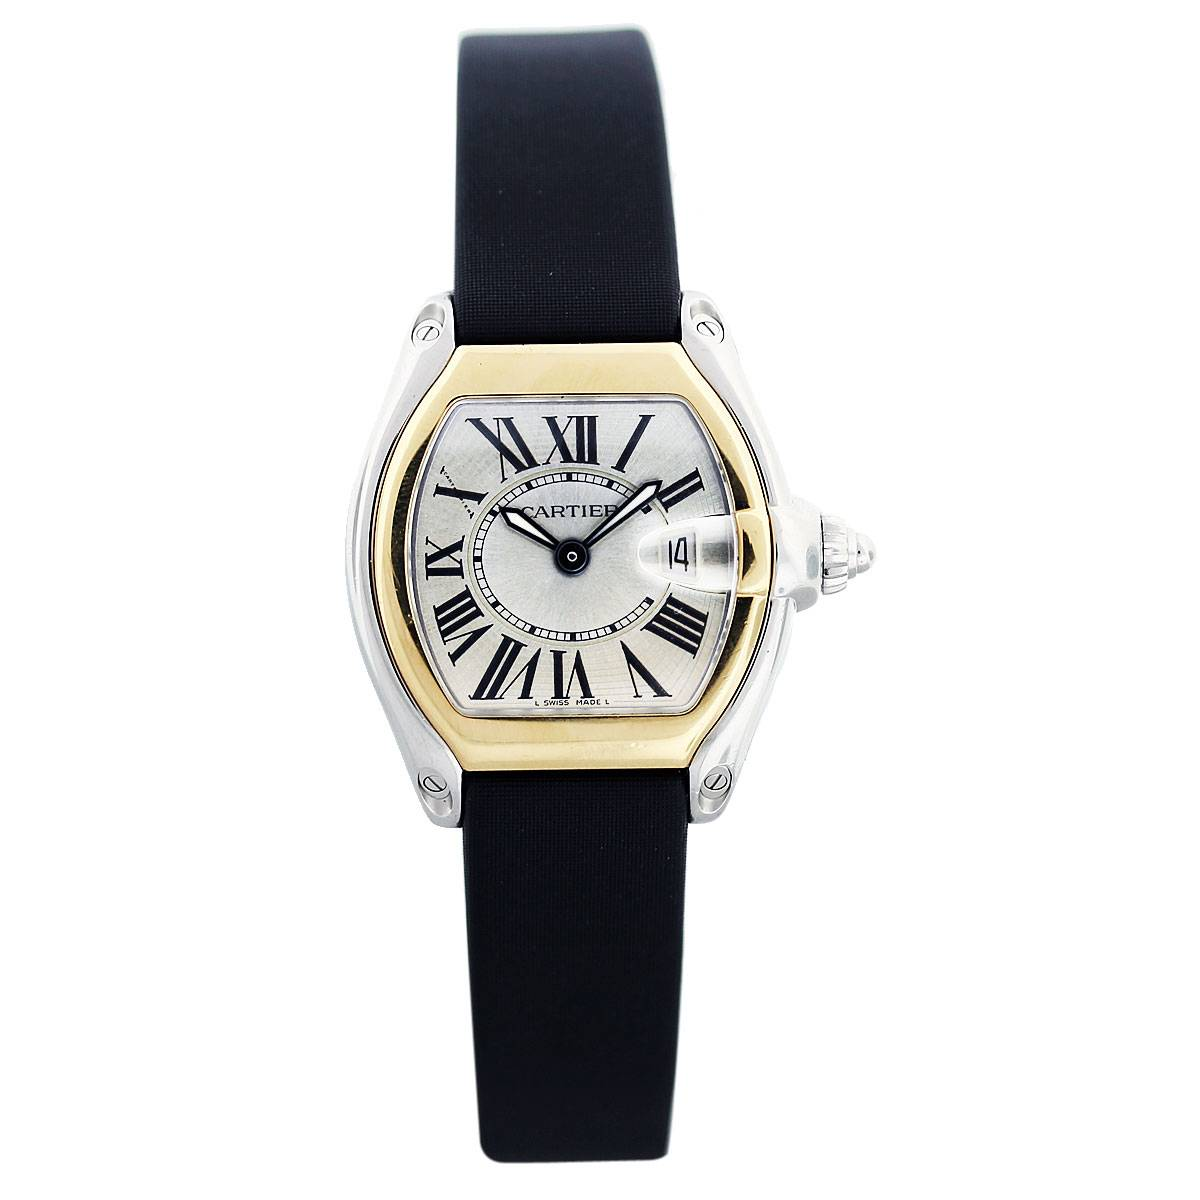 Cartier Roadster W62026Y4 Two Tone Ladies Automatic Watch, cartier boca raton, sell watch boca raton